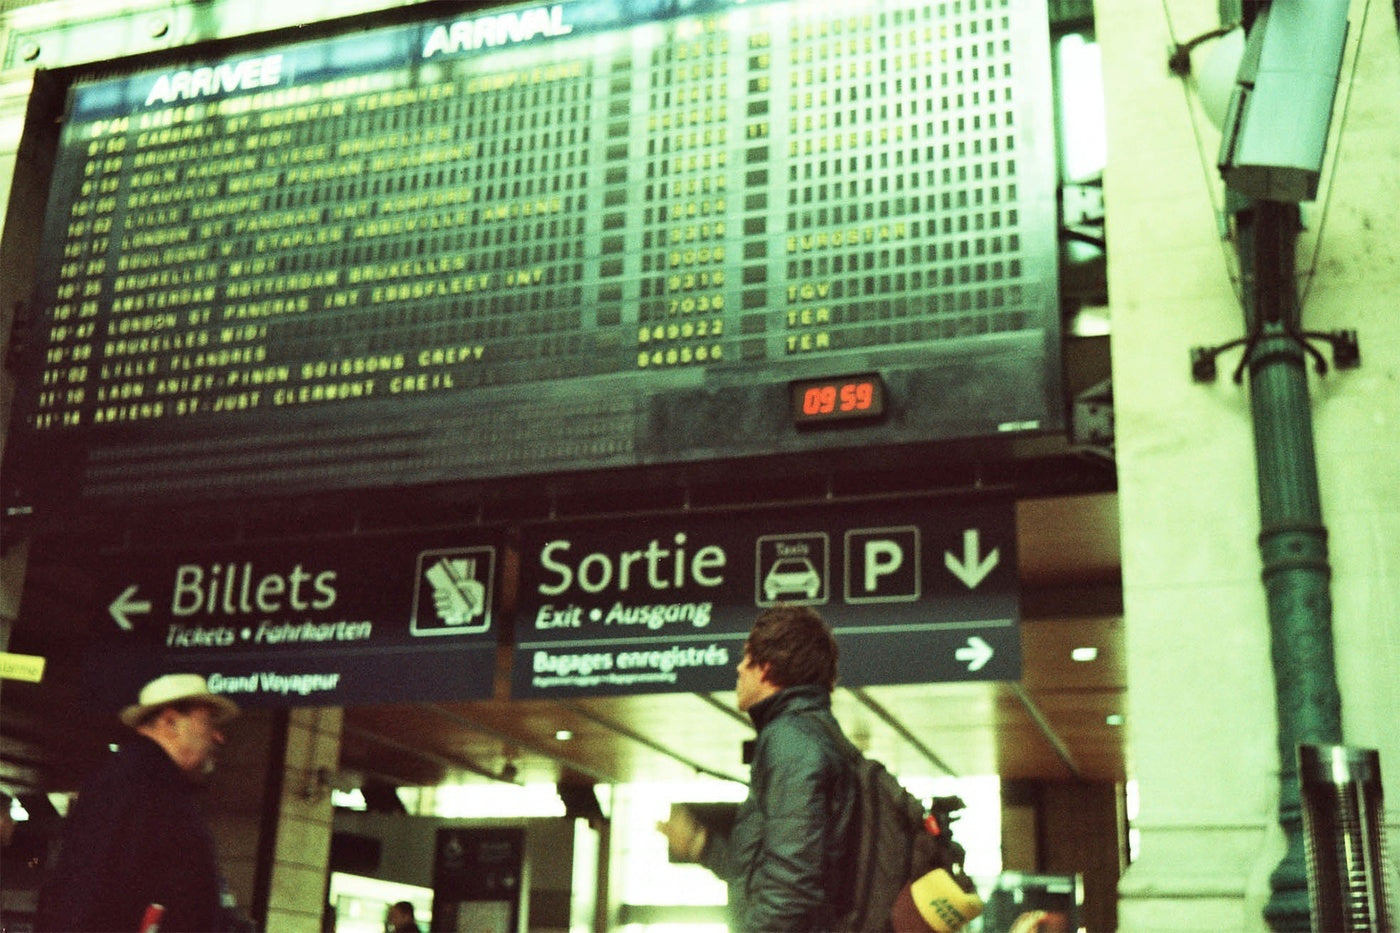 Mat Arney wearing his Finisterre Etobicoke jacket at a French train station